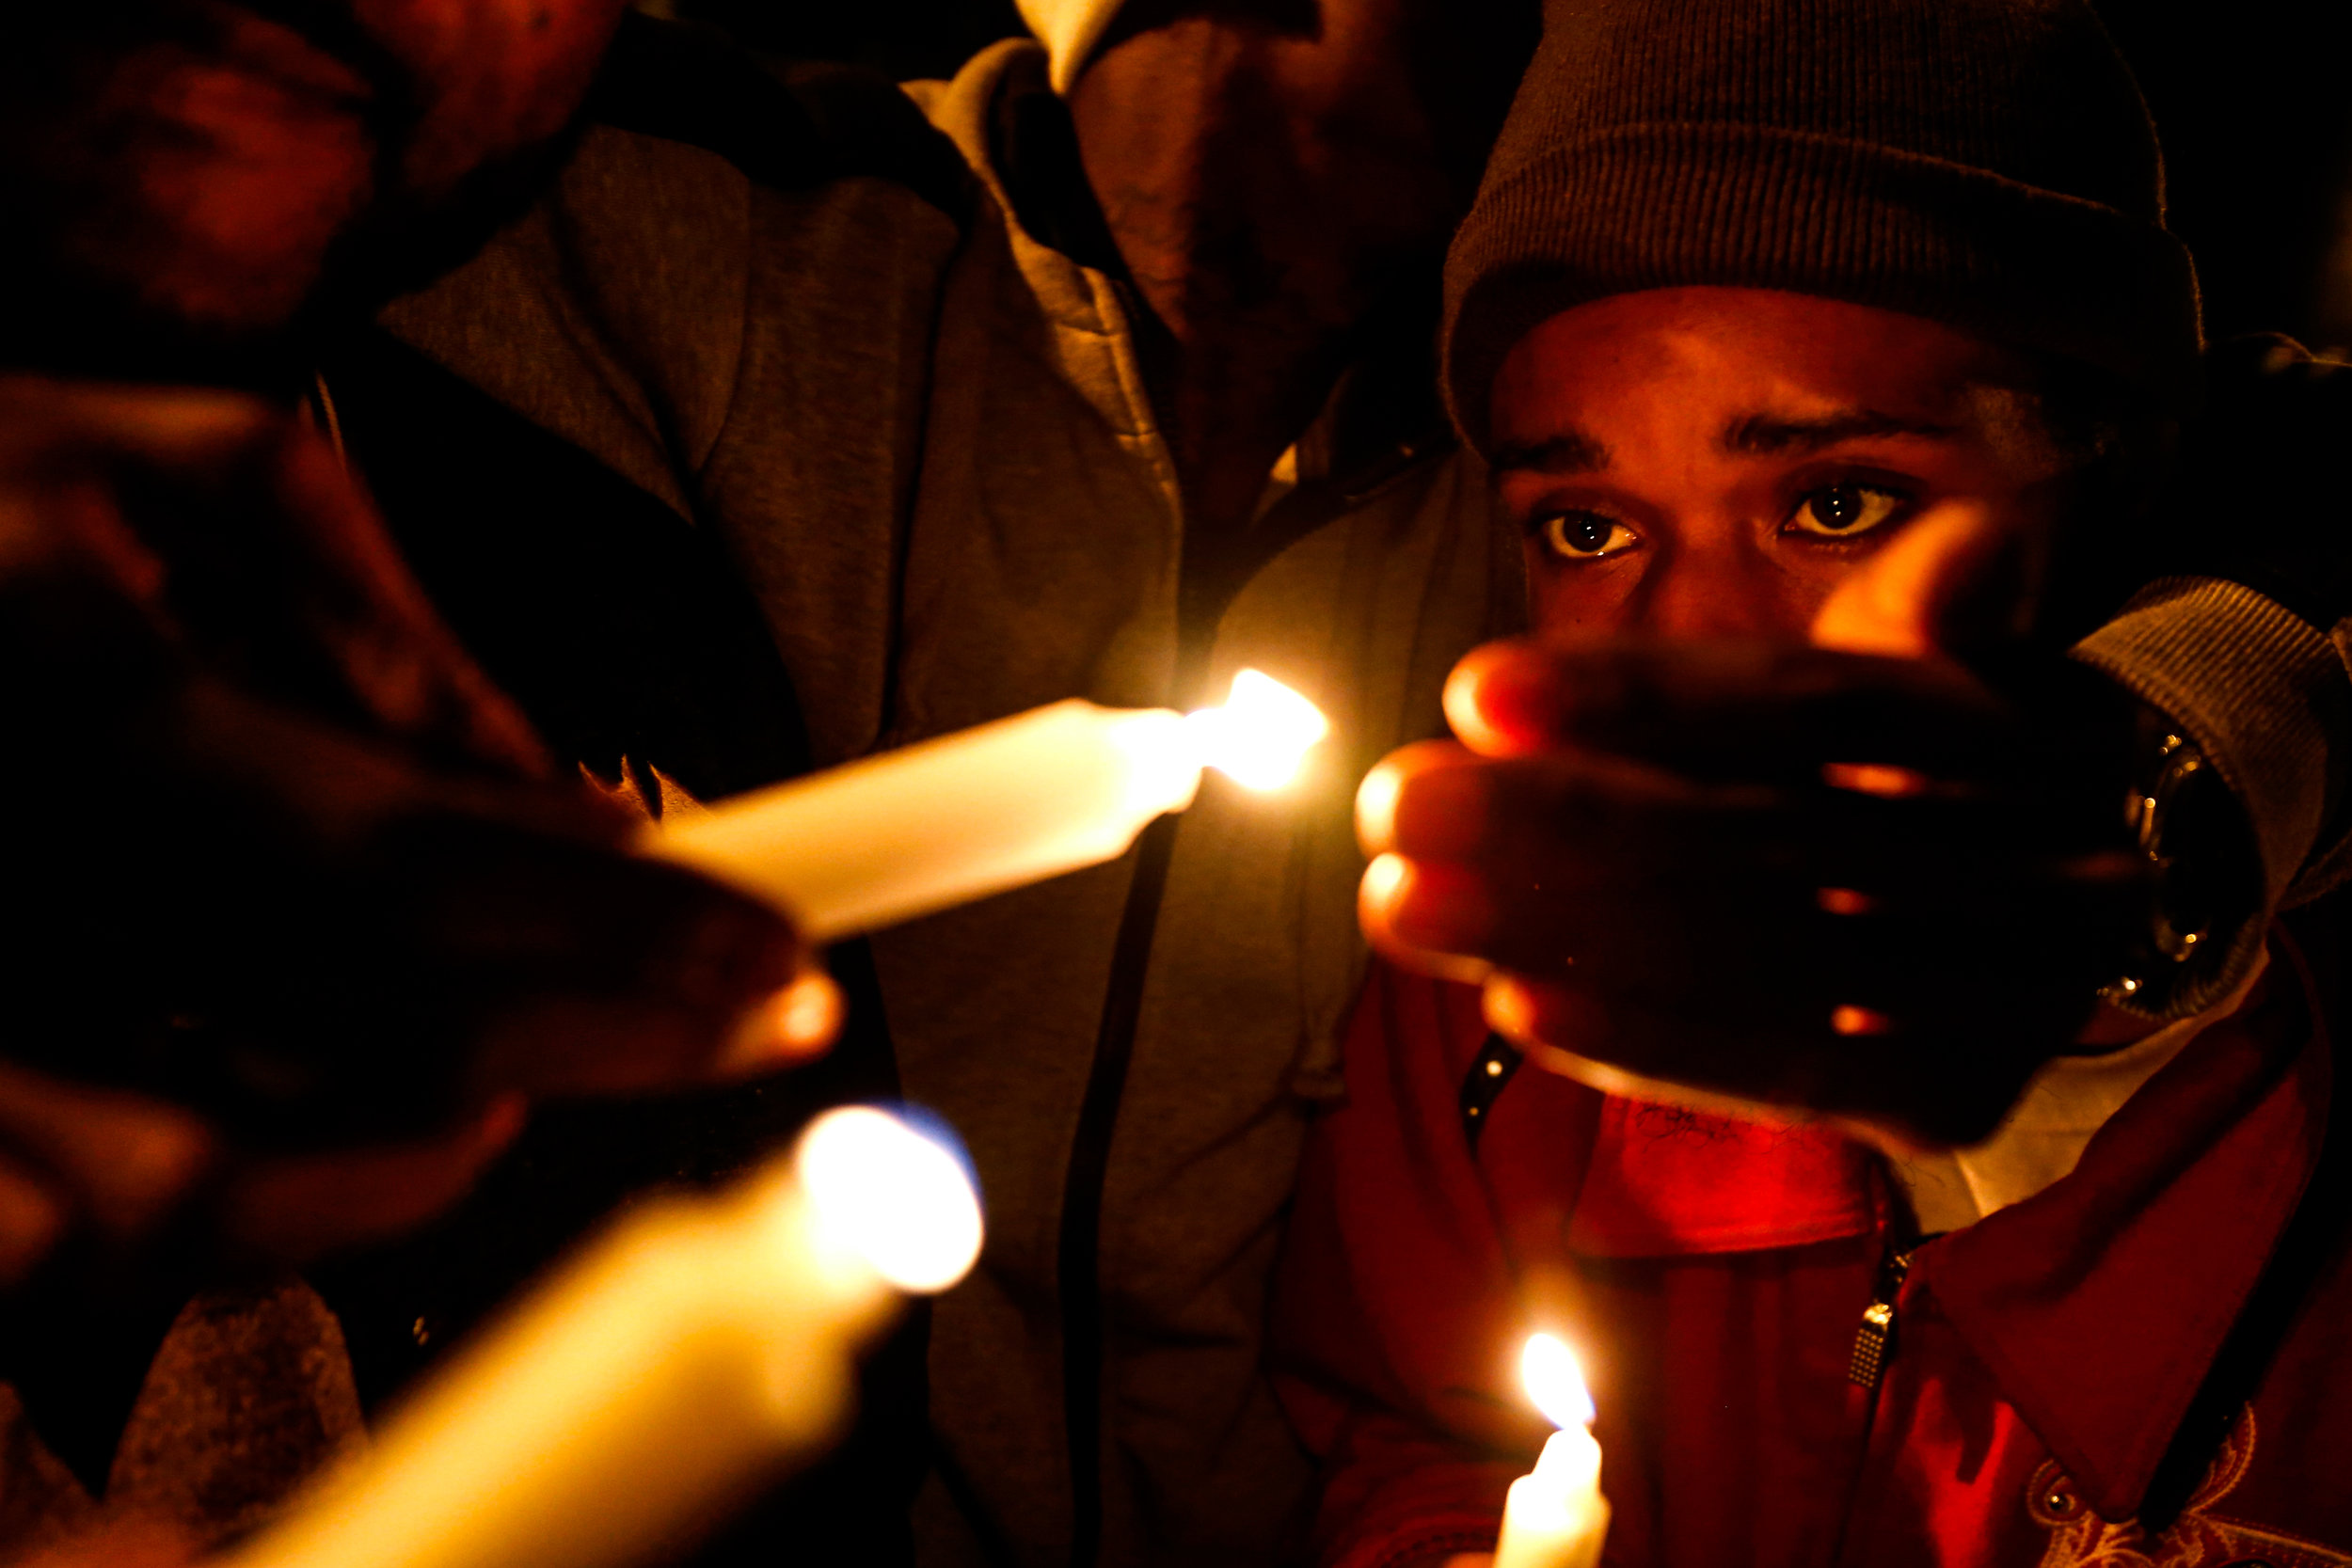 "James Mason Jr., a Flint native and long-time friend of Donte Williams, lights candles with other friends and family of Williams to remember and to celebrate his life during a vigil service on Sunday, Oct. 23, 2016 at the Flat Lot in downtown Flint, Mich. Earlier that day, Williams was shot multiple times and killed at the lot. ""We ain't have to be blood to be brothers,"" Mason said of his friend of almost 15 years. ""Sometime water is thicker than blood when you've been through the mud. That's how we was."""